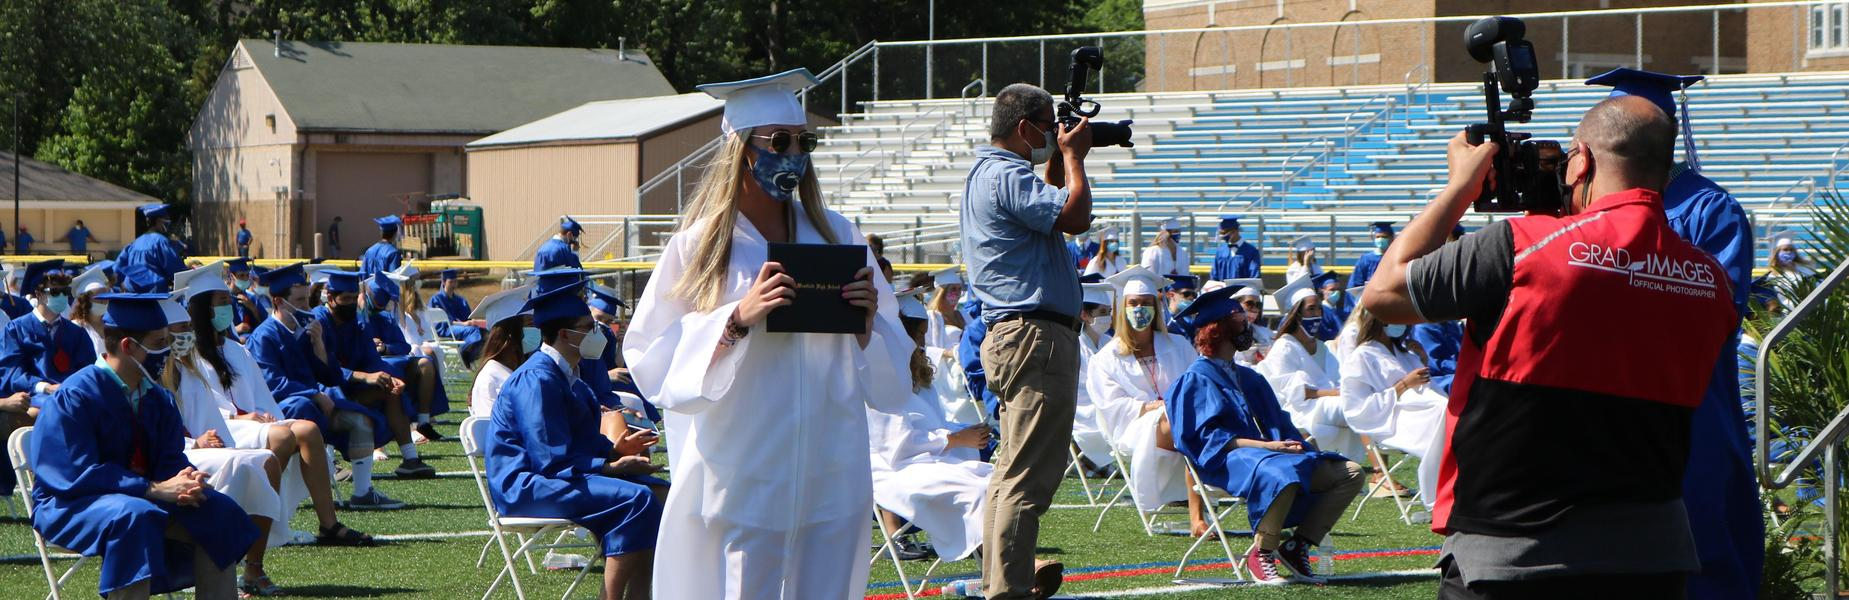 Photo of WHS graduate posing for picture.